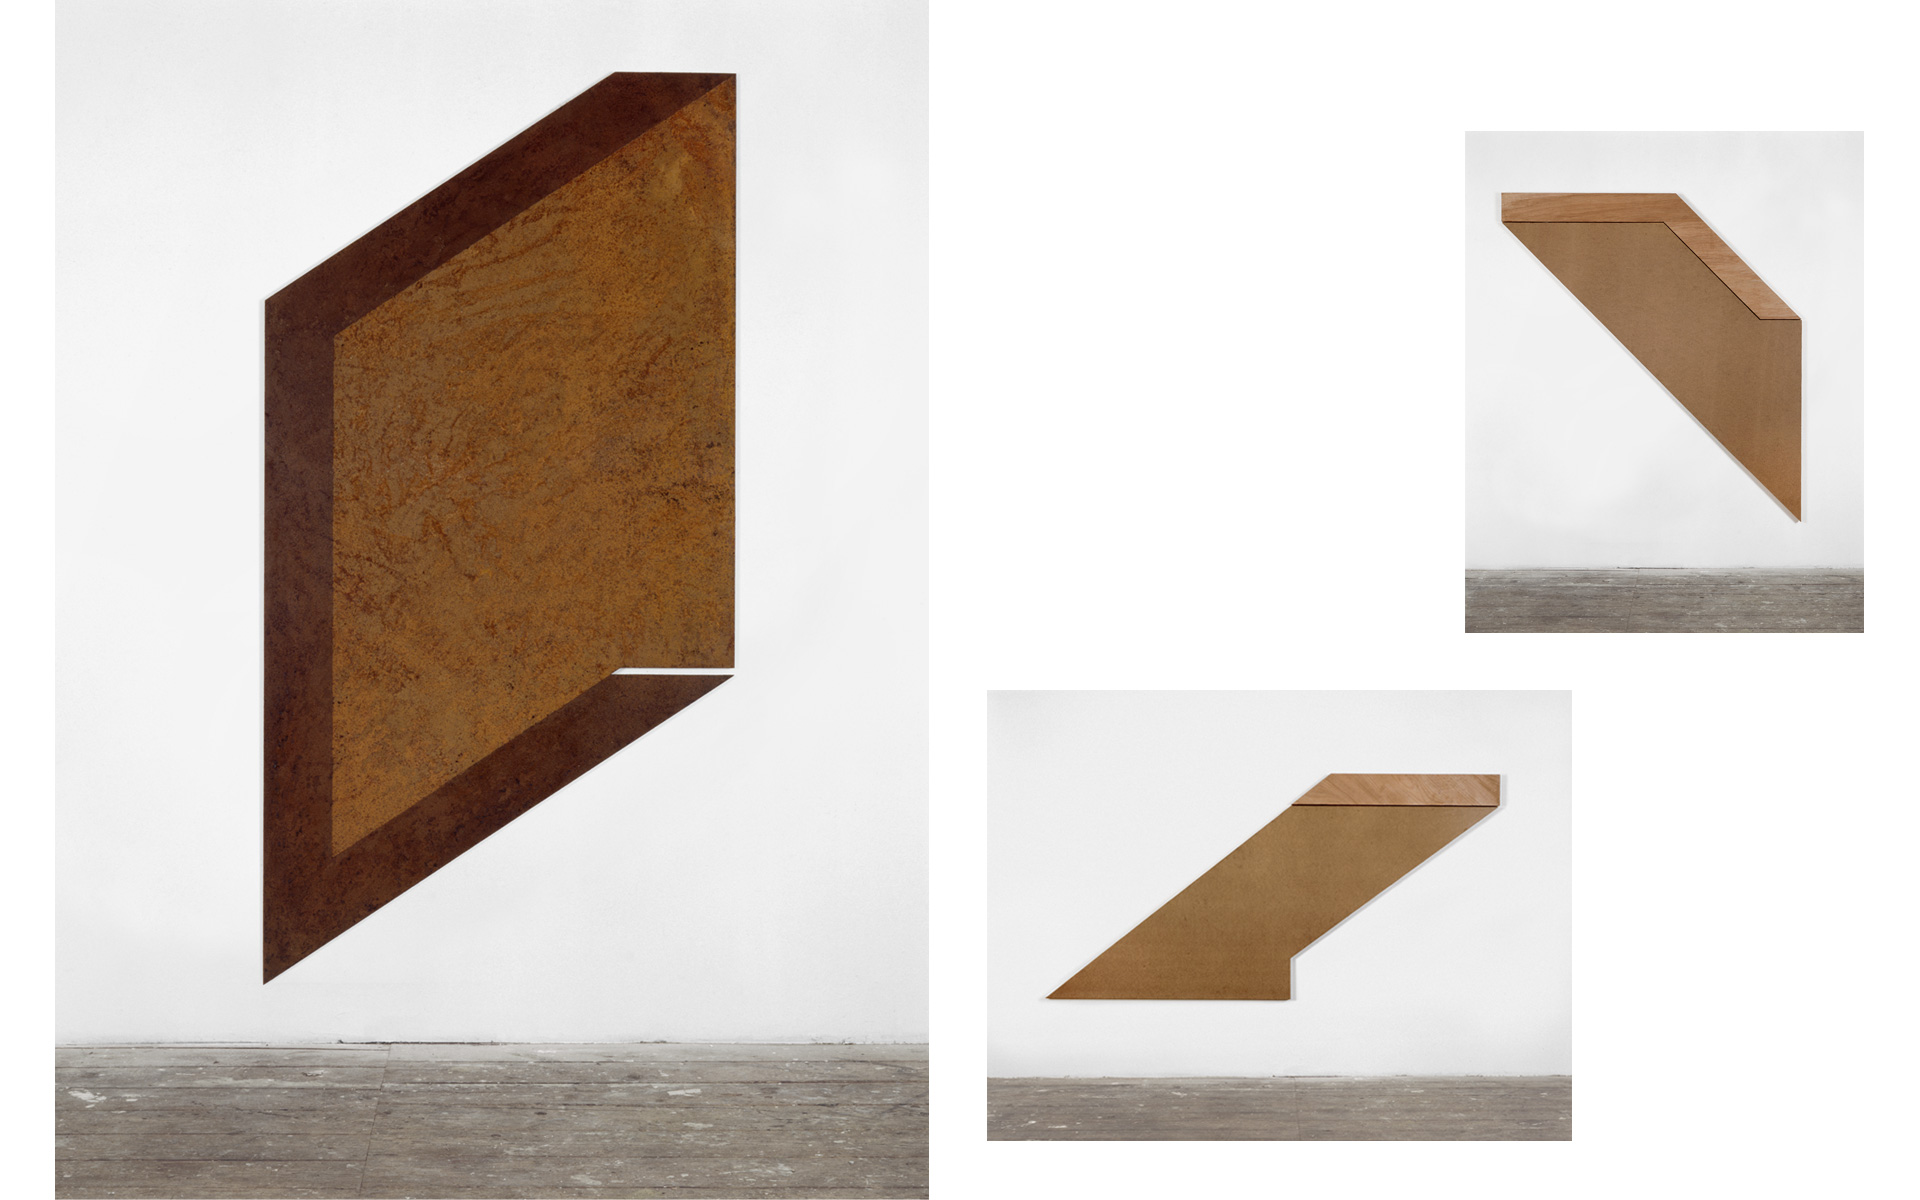 left: Relief II, 1988 Steel rusted, oiled 200 × 100 × 0.5 cm / above: O. T., two parts, 1988 Hardboard, plywood 202 × 184 × 4.5 cm / below: O. T., two parts, 1988 Hardboard, plywood 130 × 244 × 4.5 cm - Photos: Christoph Valentien